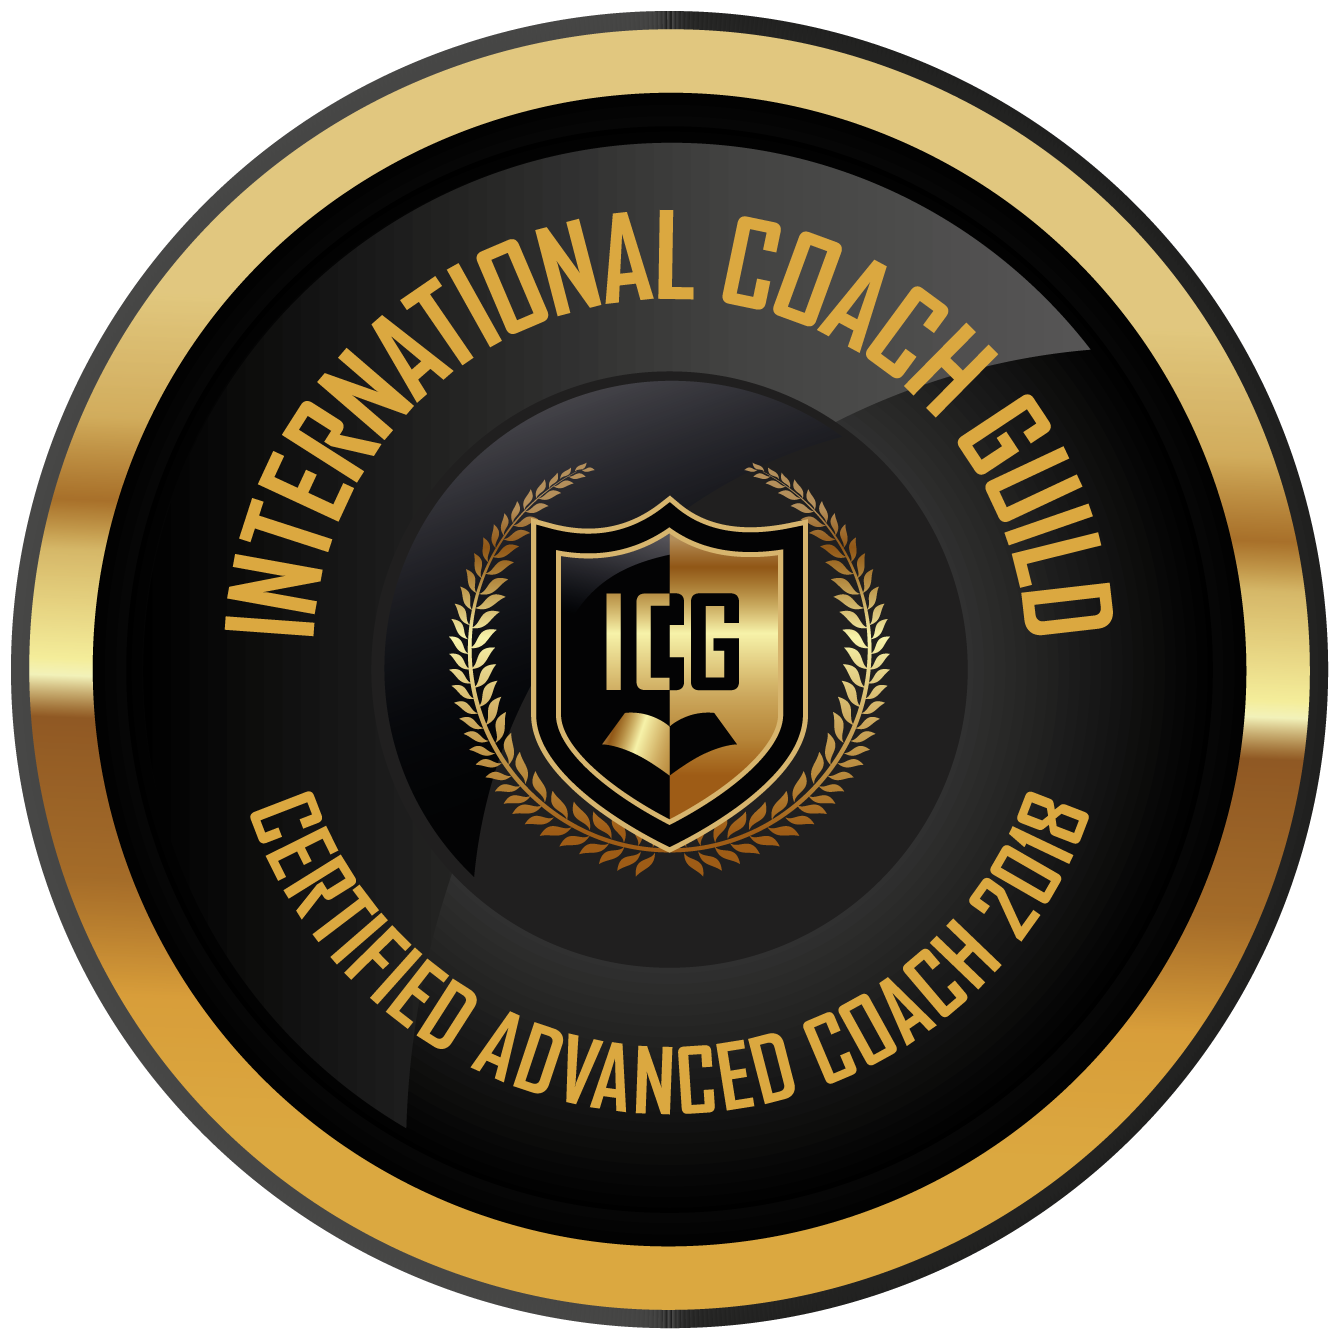 ICG Certified Advanced Coach 2018 large